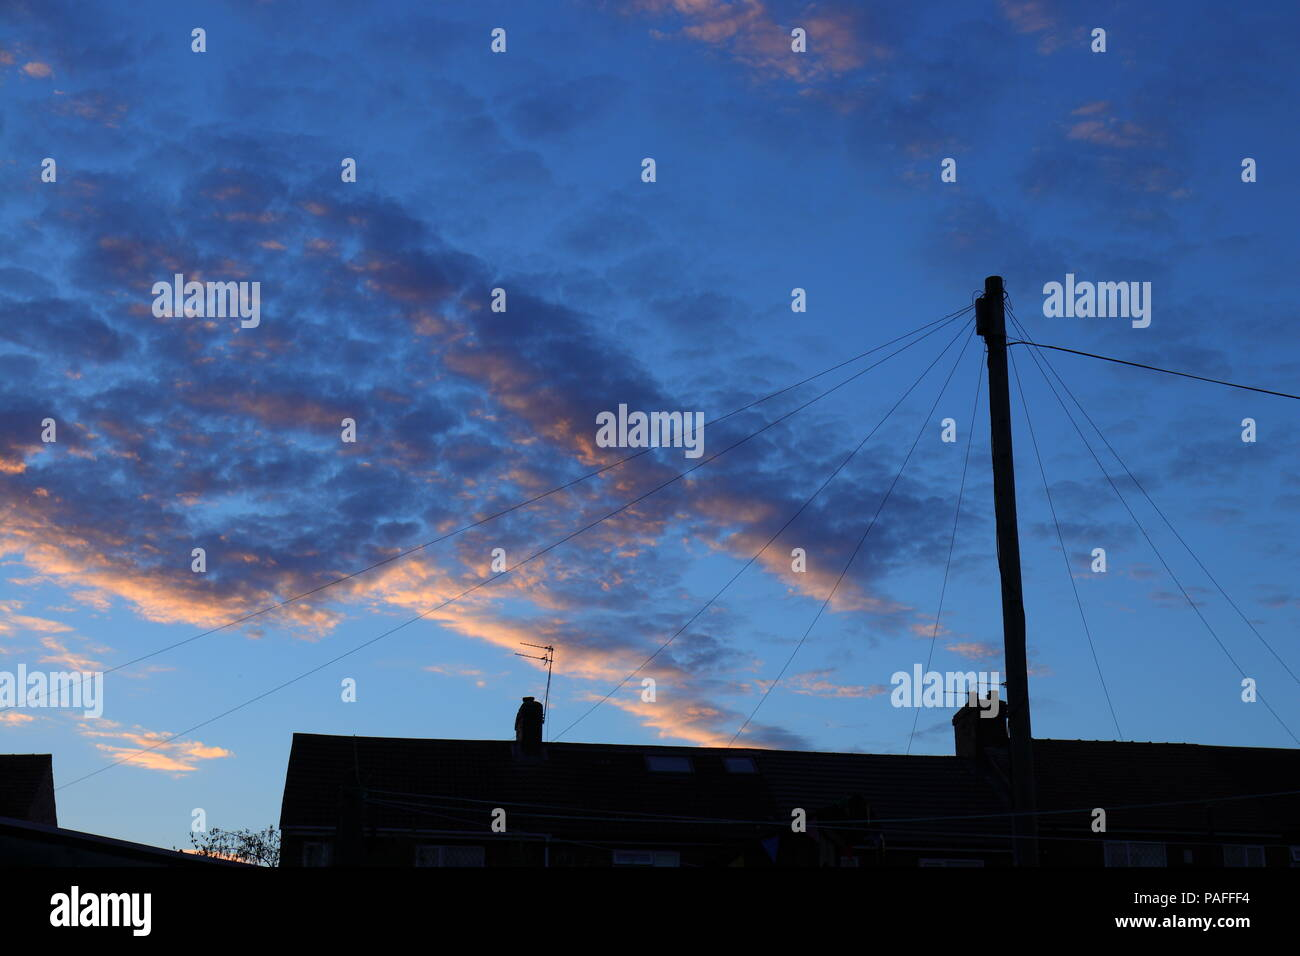 A summer sky at dusk above terraced houses in Leeds - Stock Image